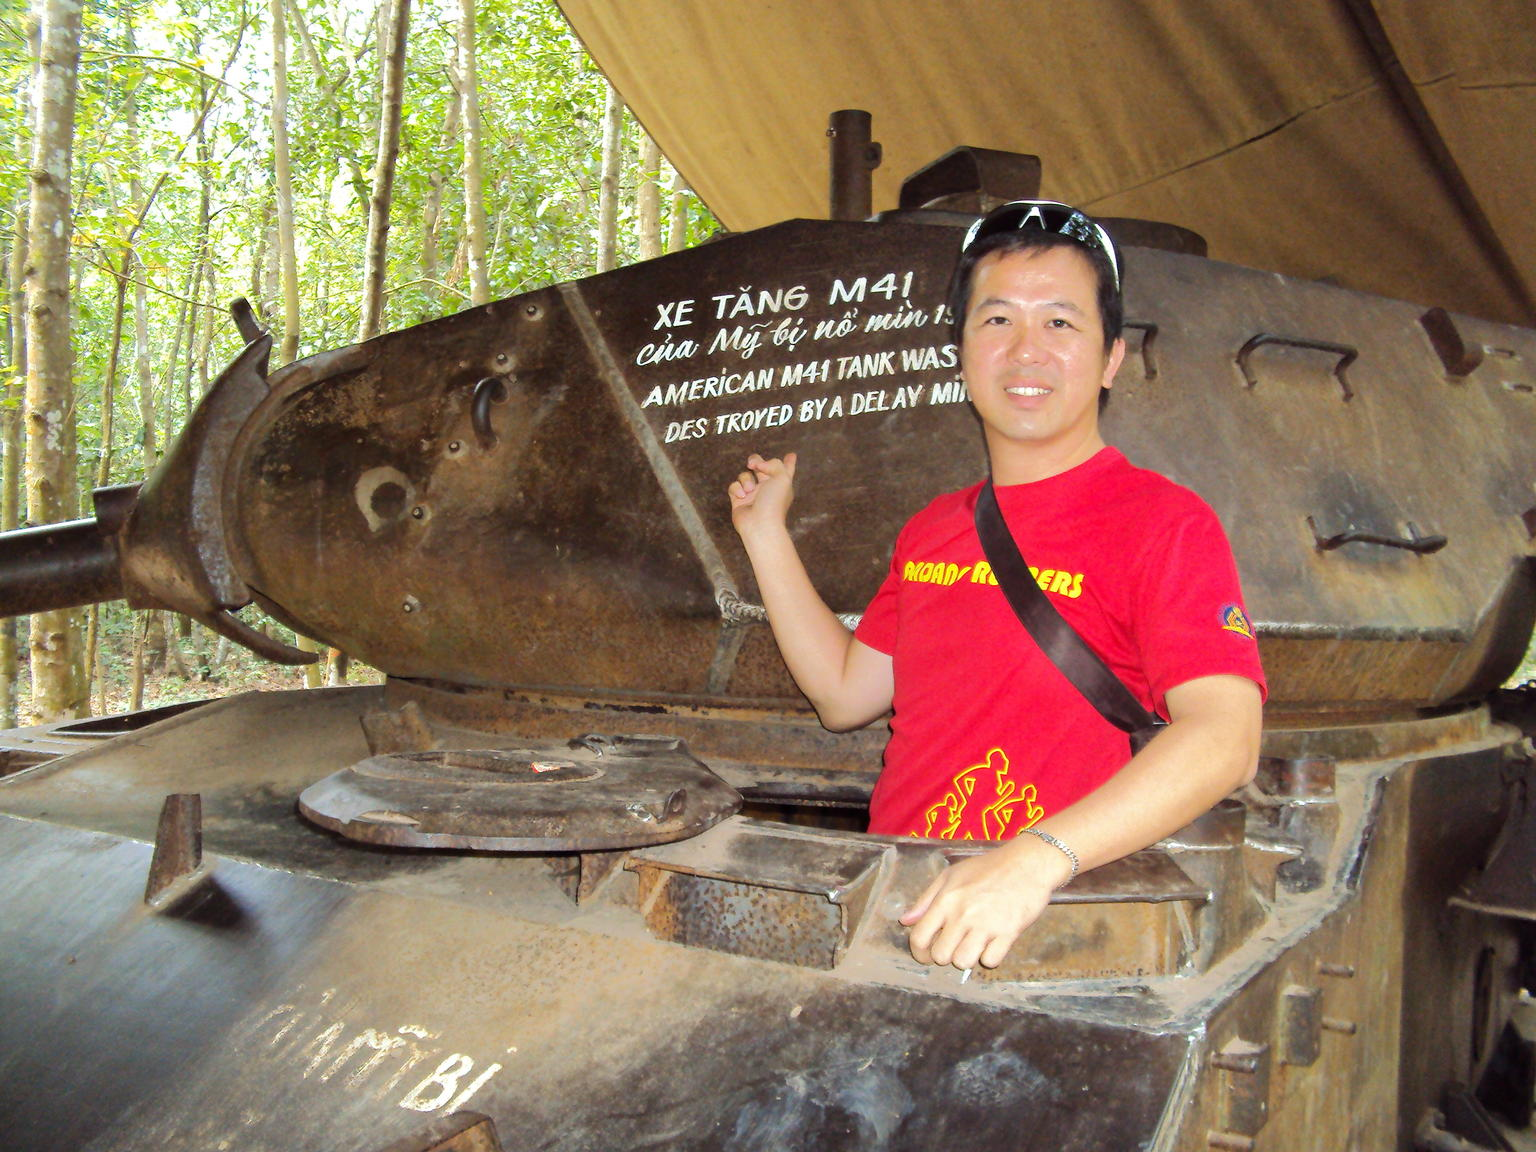 Destroyed tank, Cu Chi Tunnels tour